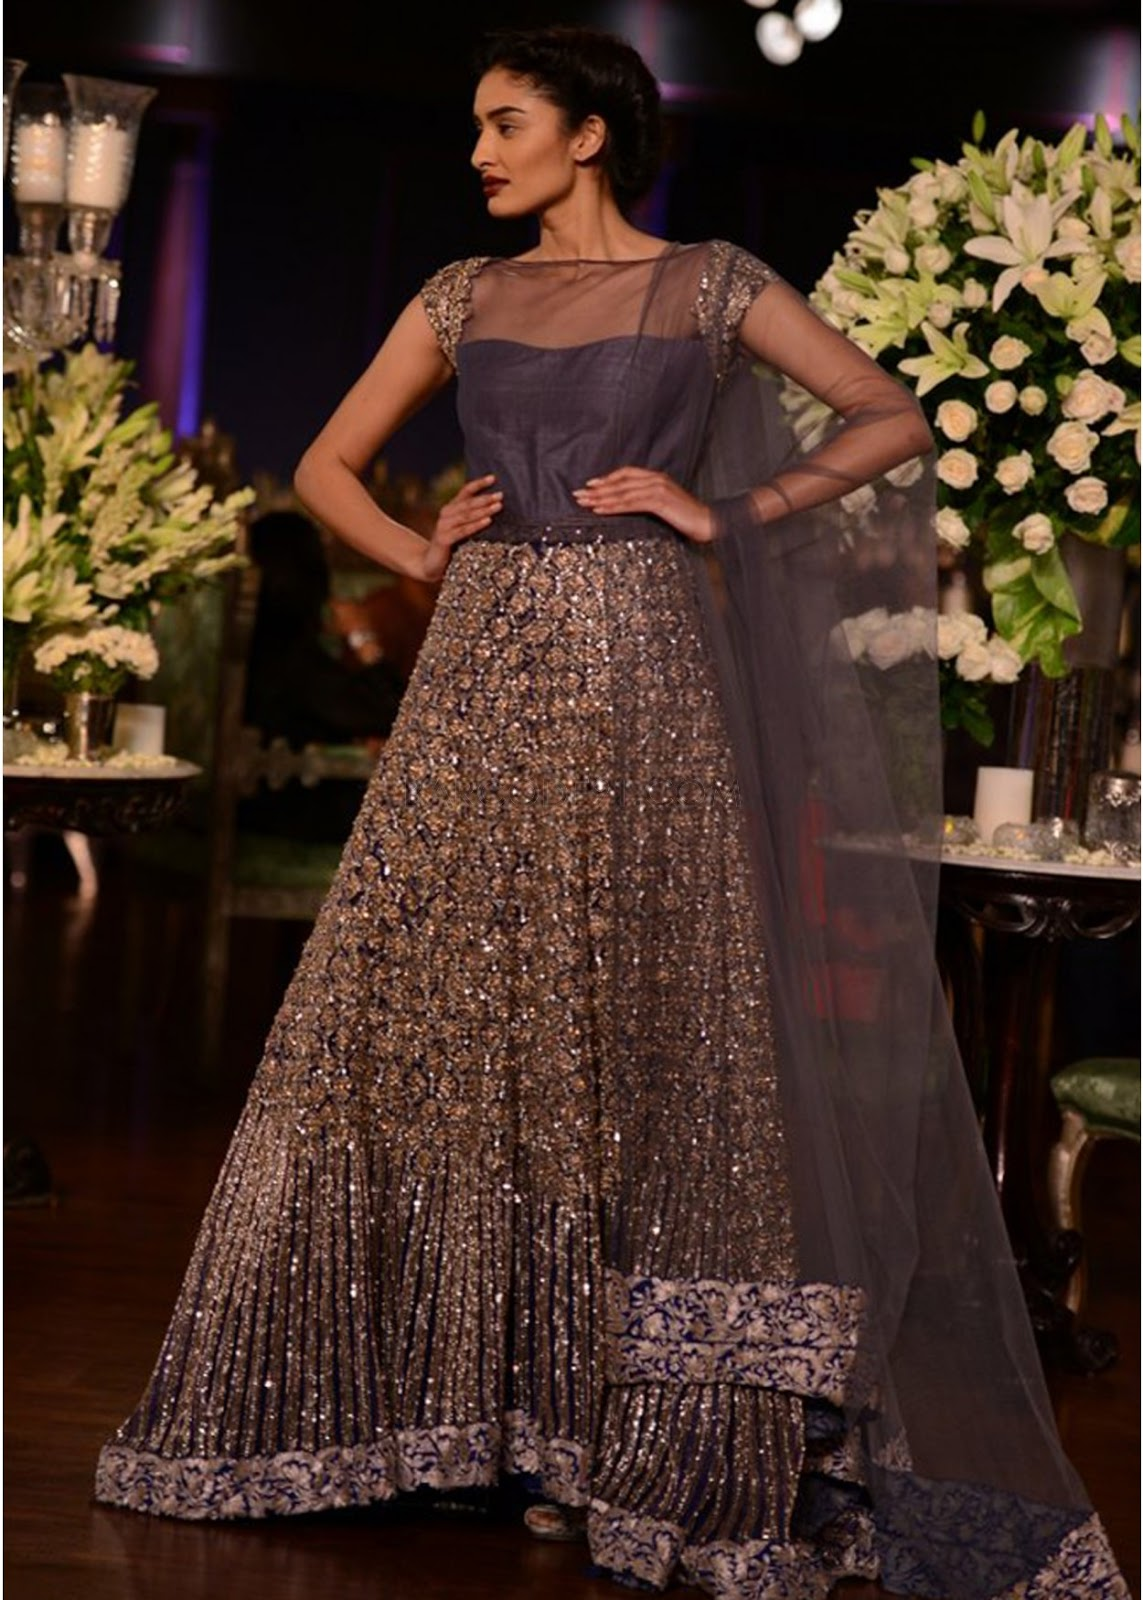 manish malhotra indian collection bridal anarkali reception dress clothes week delhi wear suits ethnic couture pcj lehenga inspired dresses ceremony